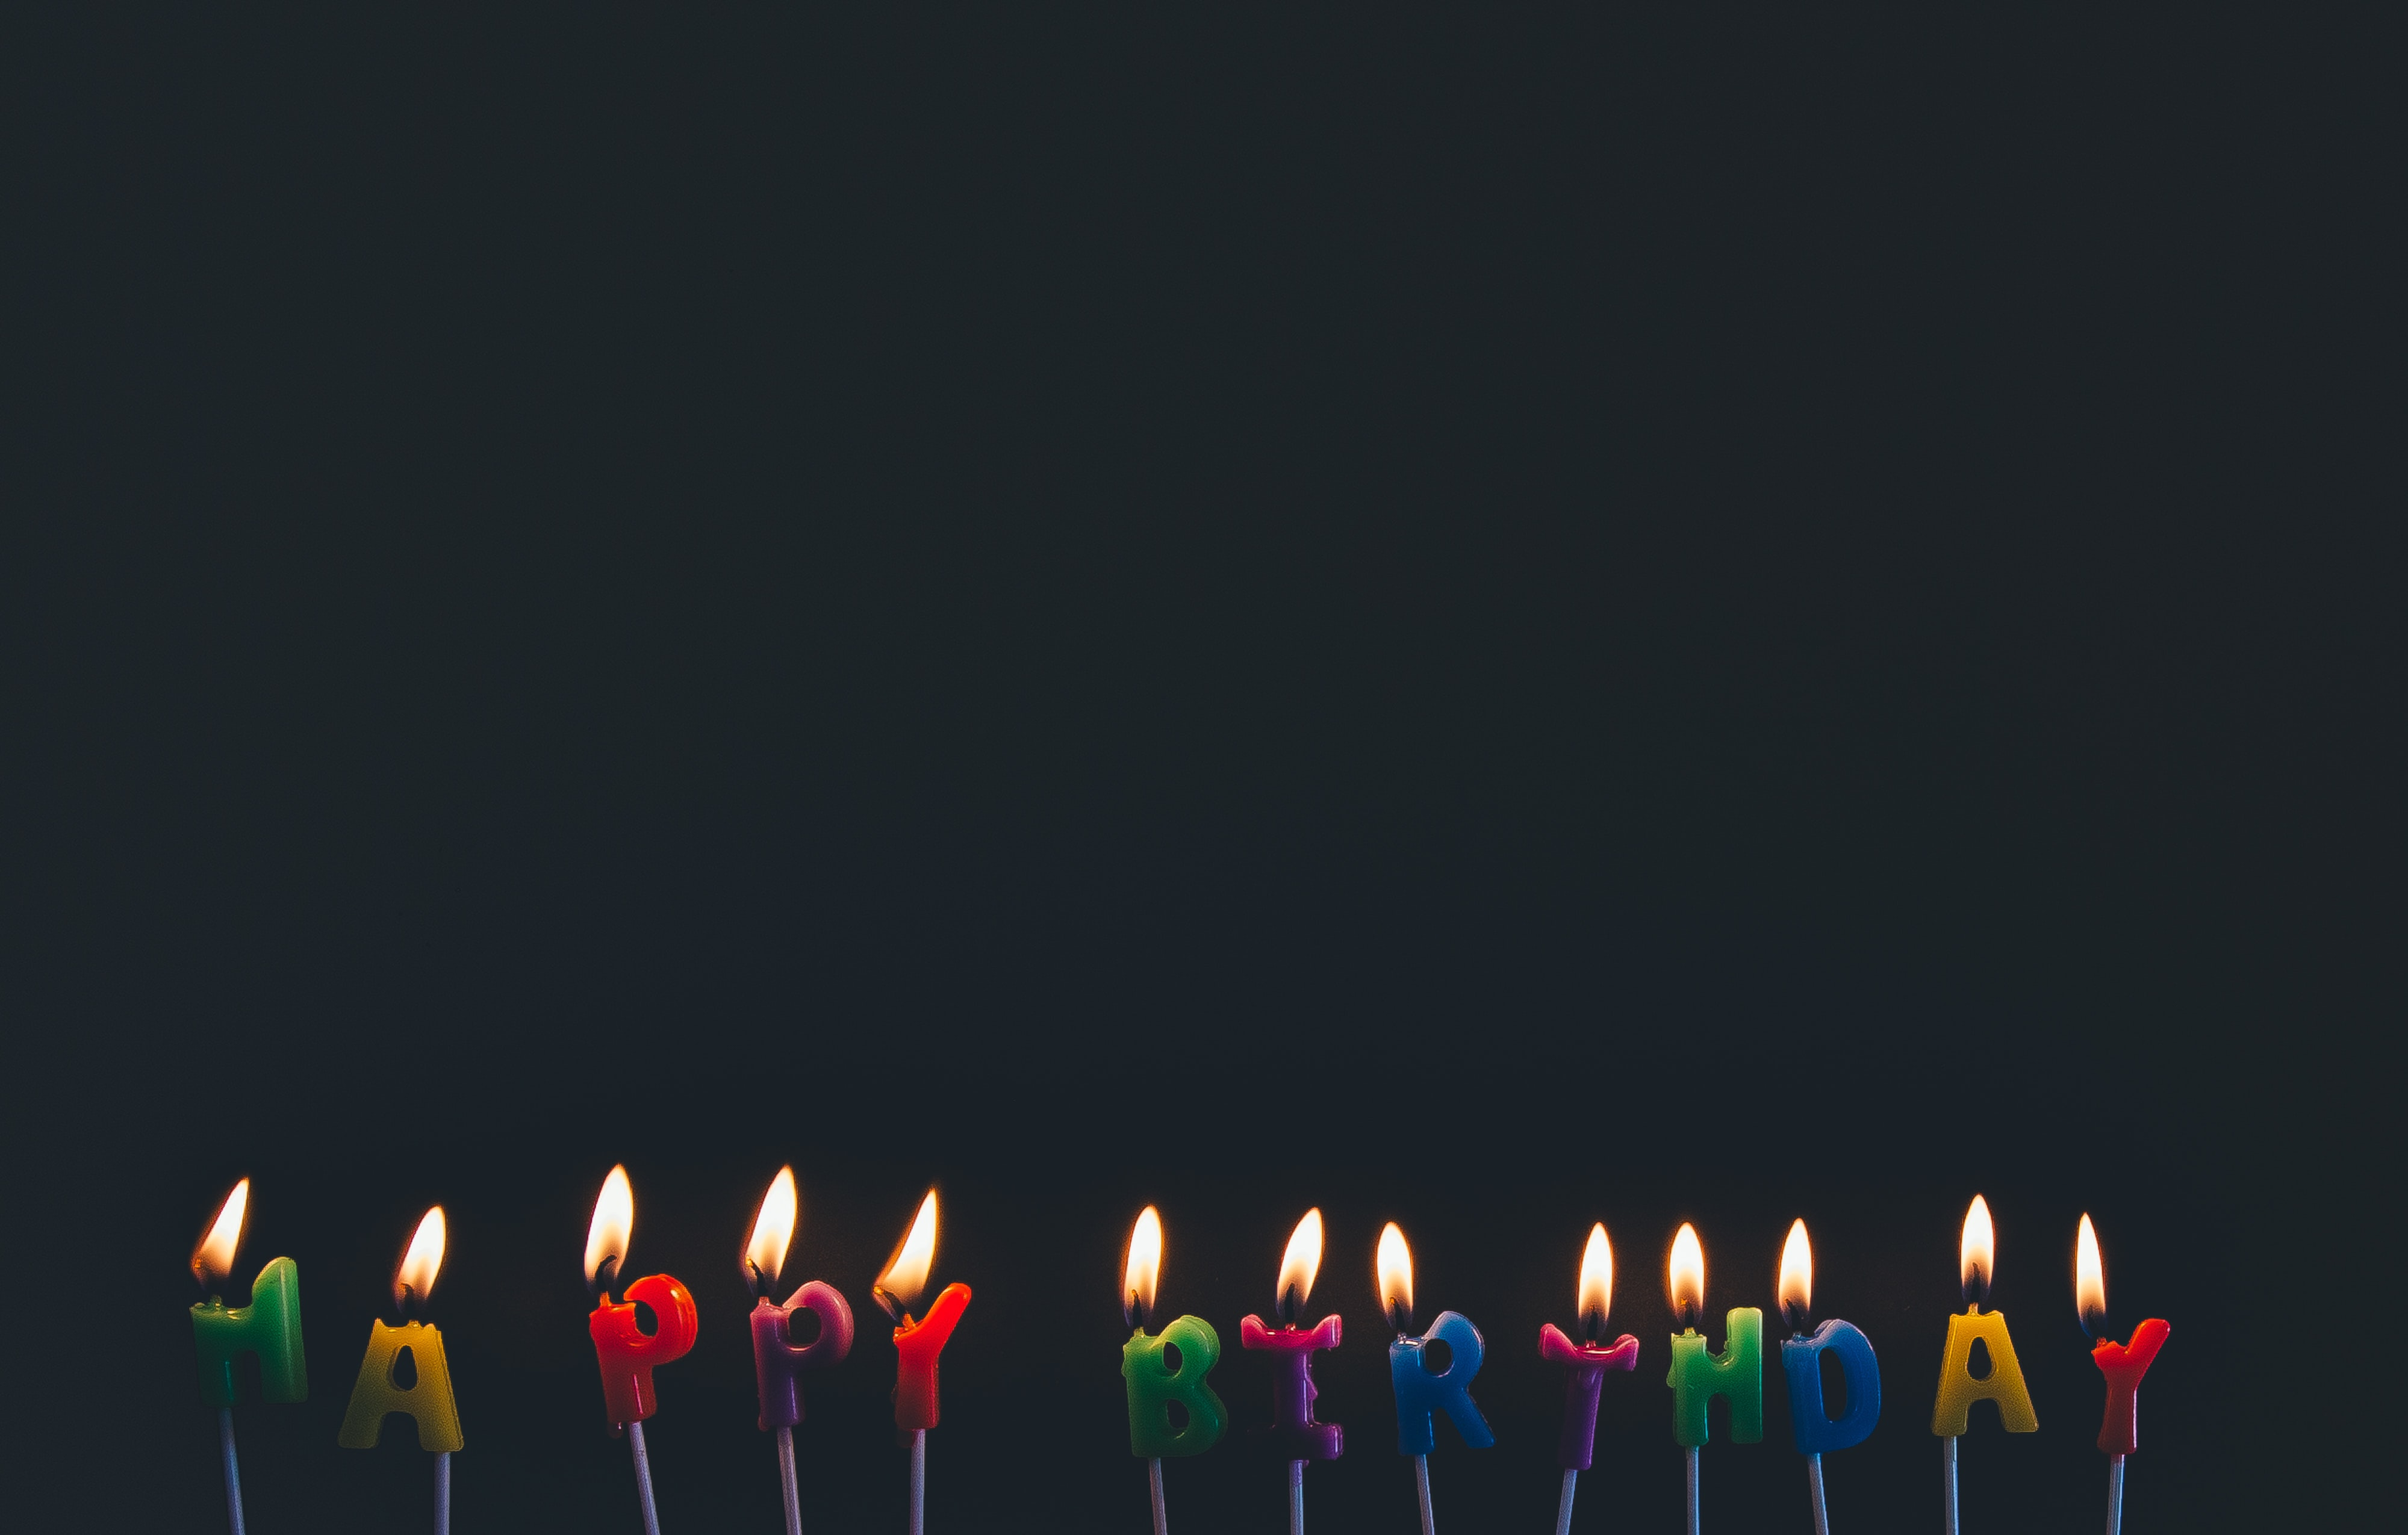 Happy birthday candles that are lit and melting